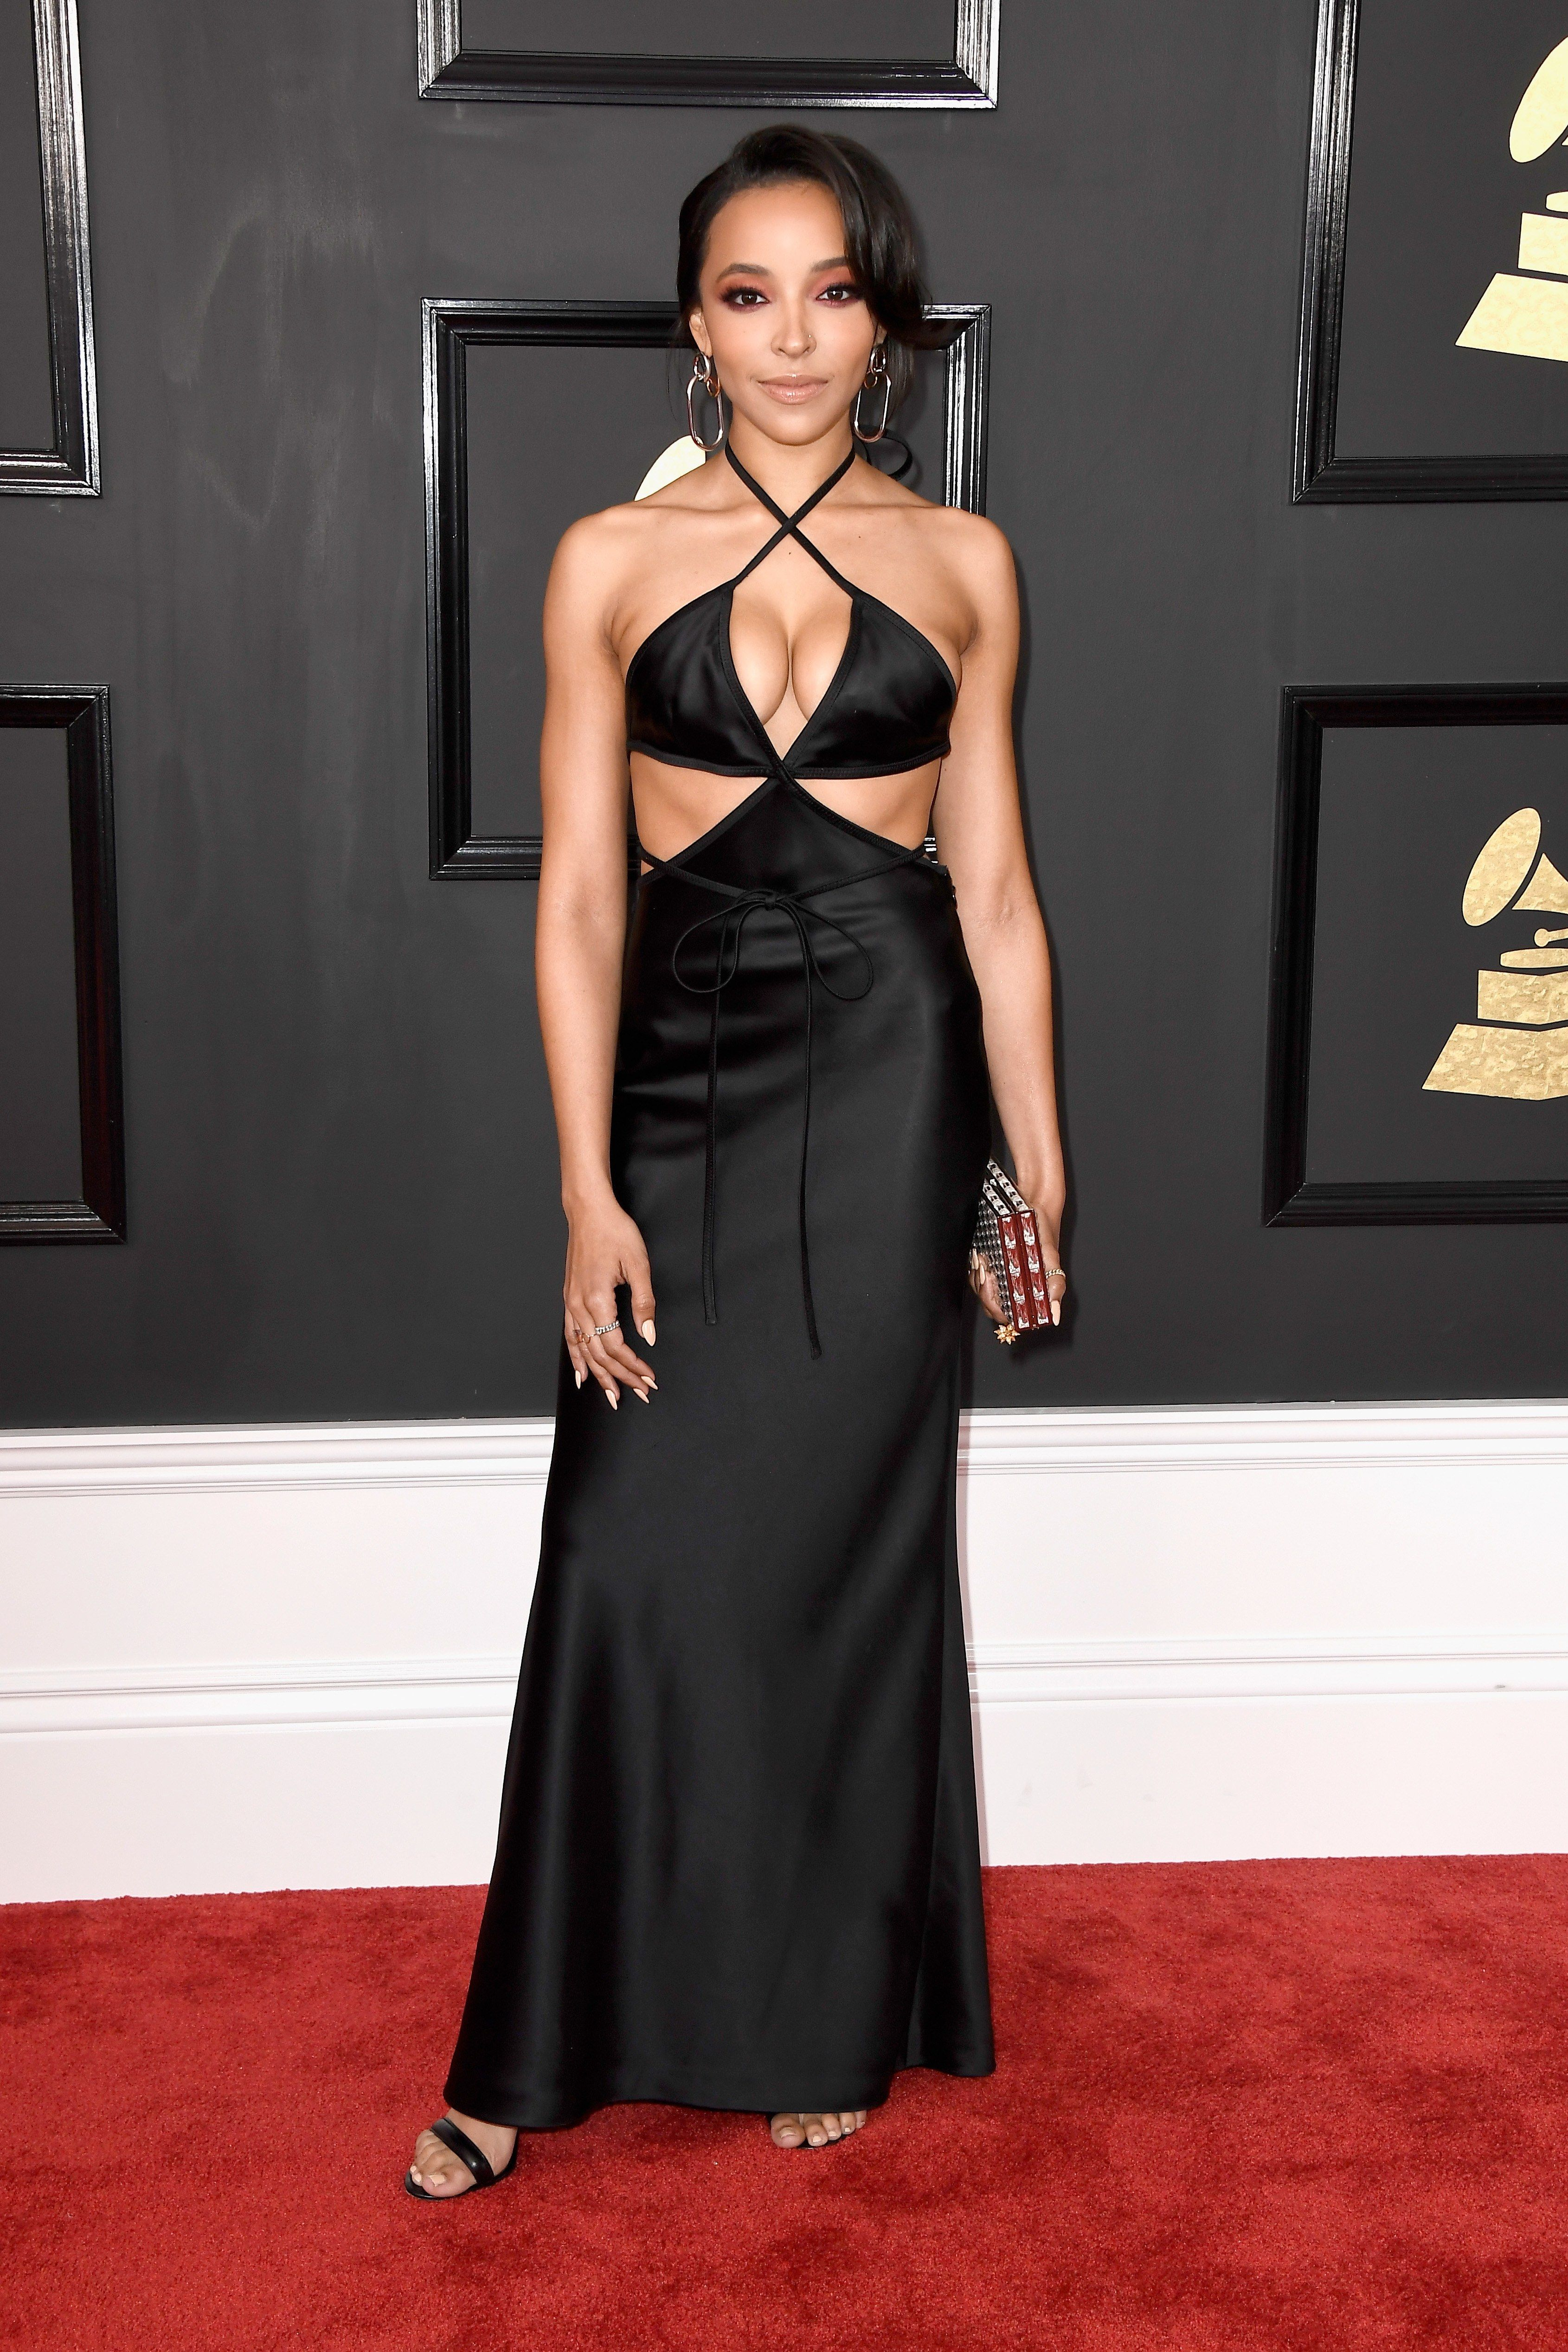 Grammys 2017 Rihanna Beyonce And More Of The Boldest Looks Of The Night Red Carpet Dresses Best Grammy Awards Red Carpet Red Carpet Looks